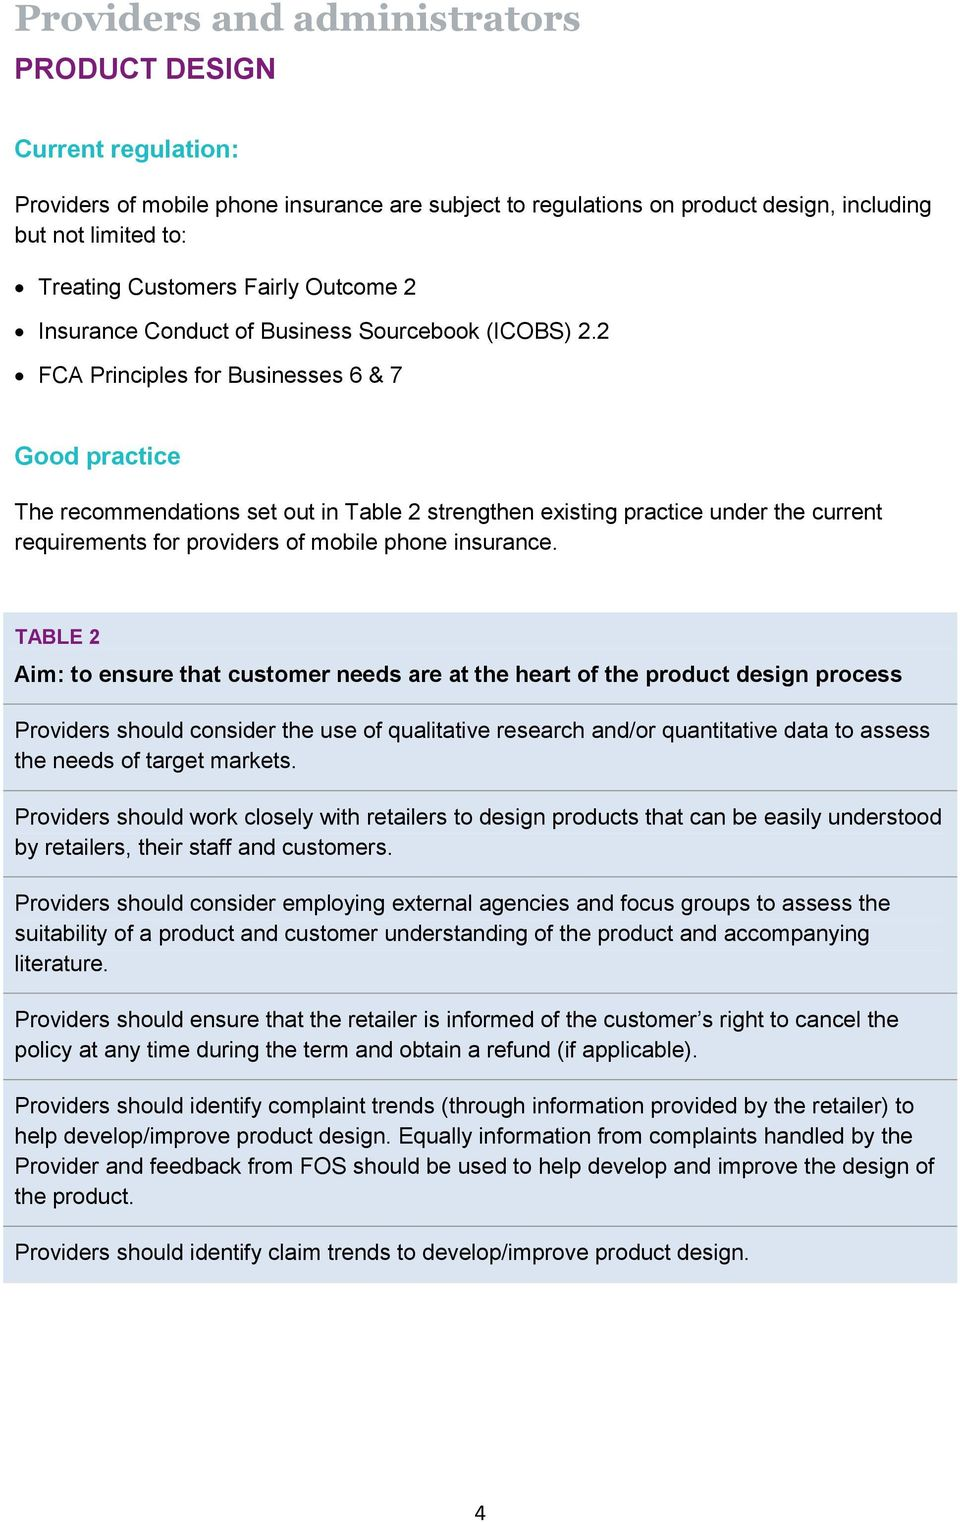 2 FCA Principles for Businesses 6 & 7 Good practice The recommendations set out in Table 2 strengthen existing practice under the current TABLE 2 Aim: to ensure that customer needs are at the heart